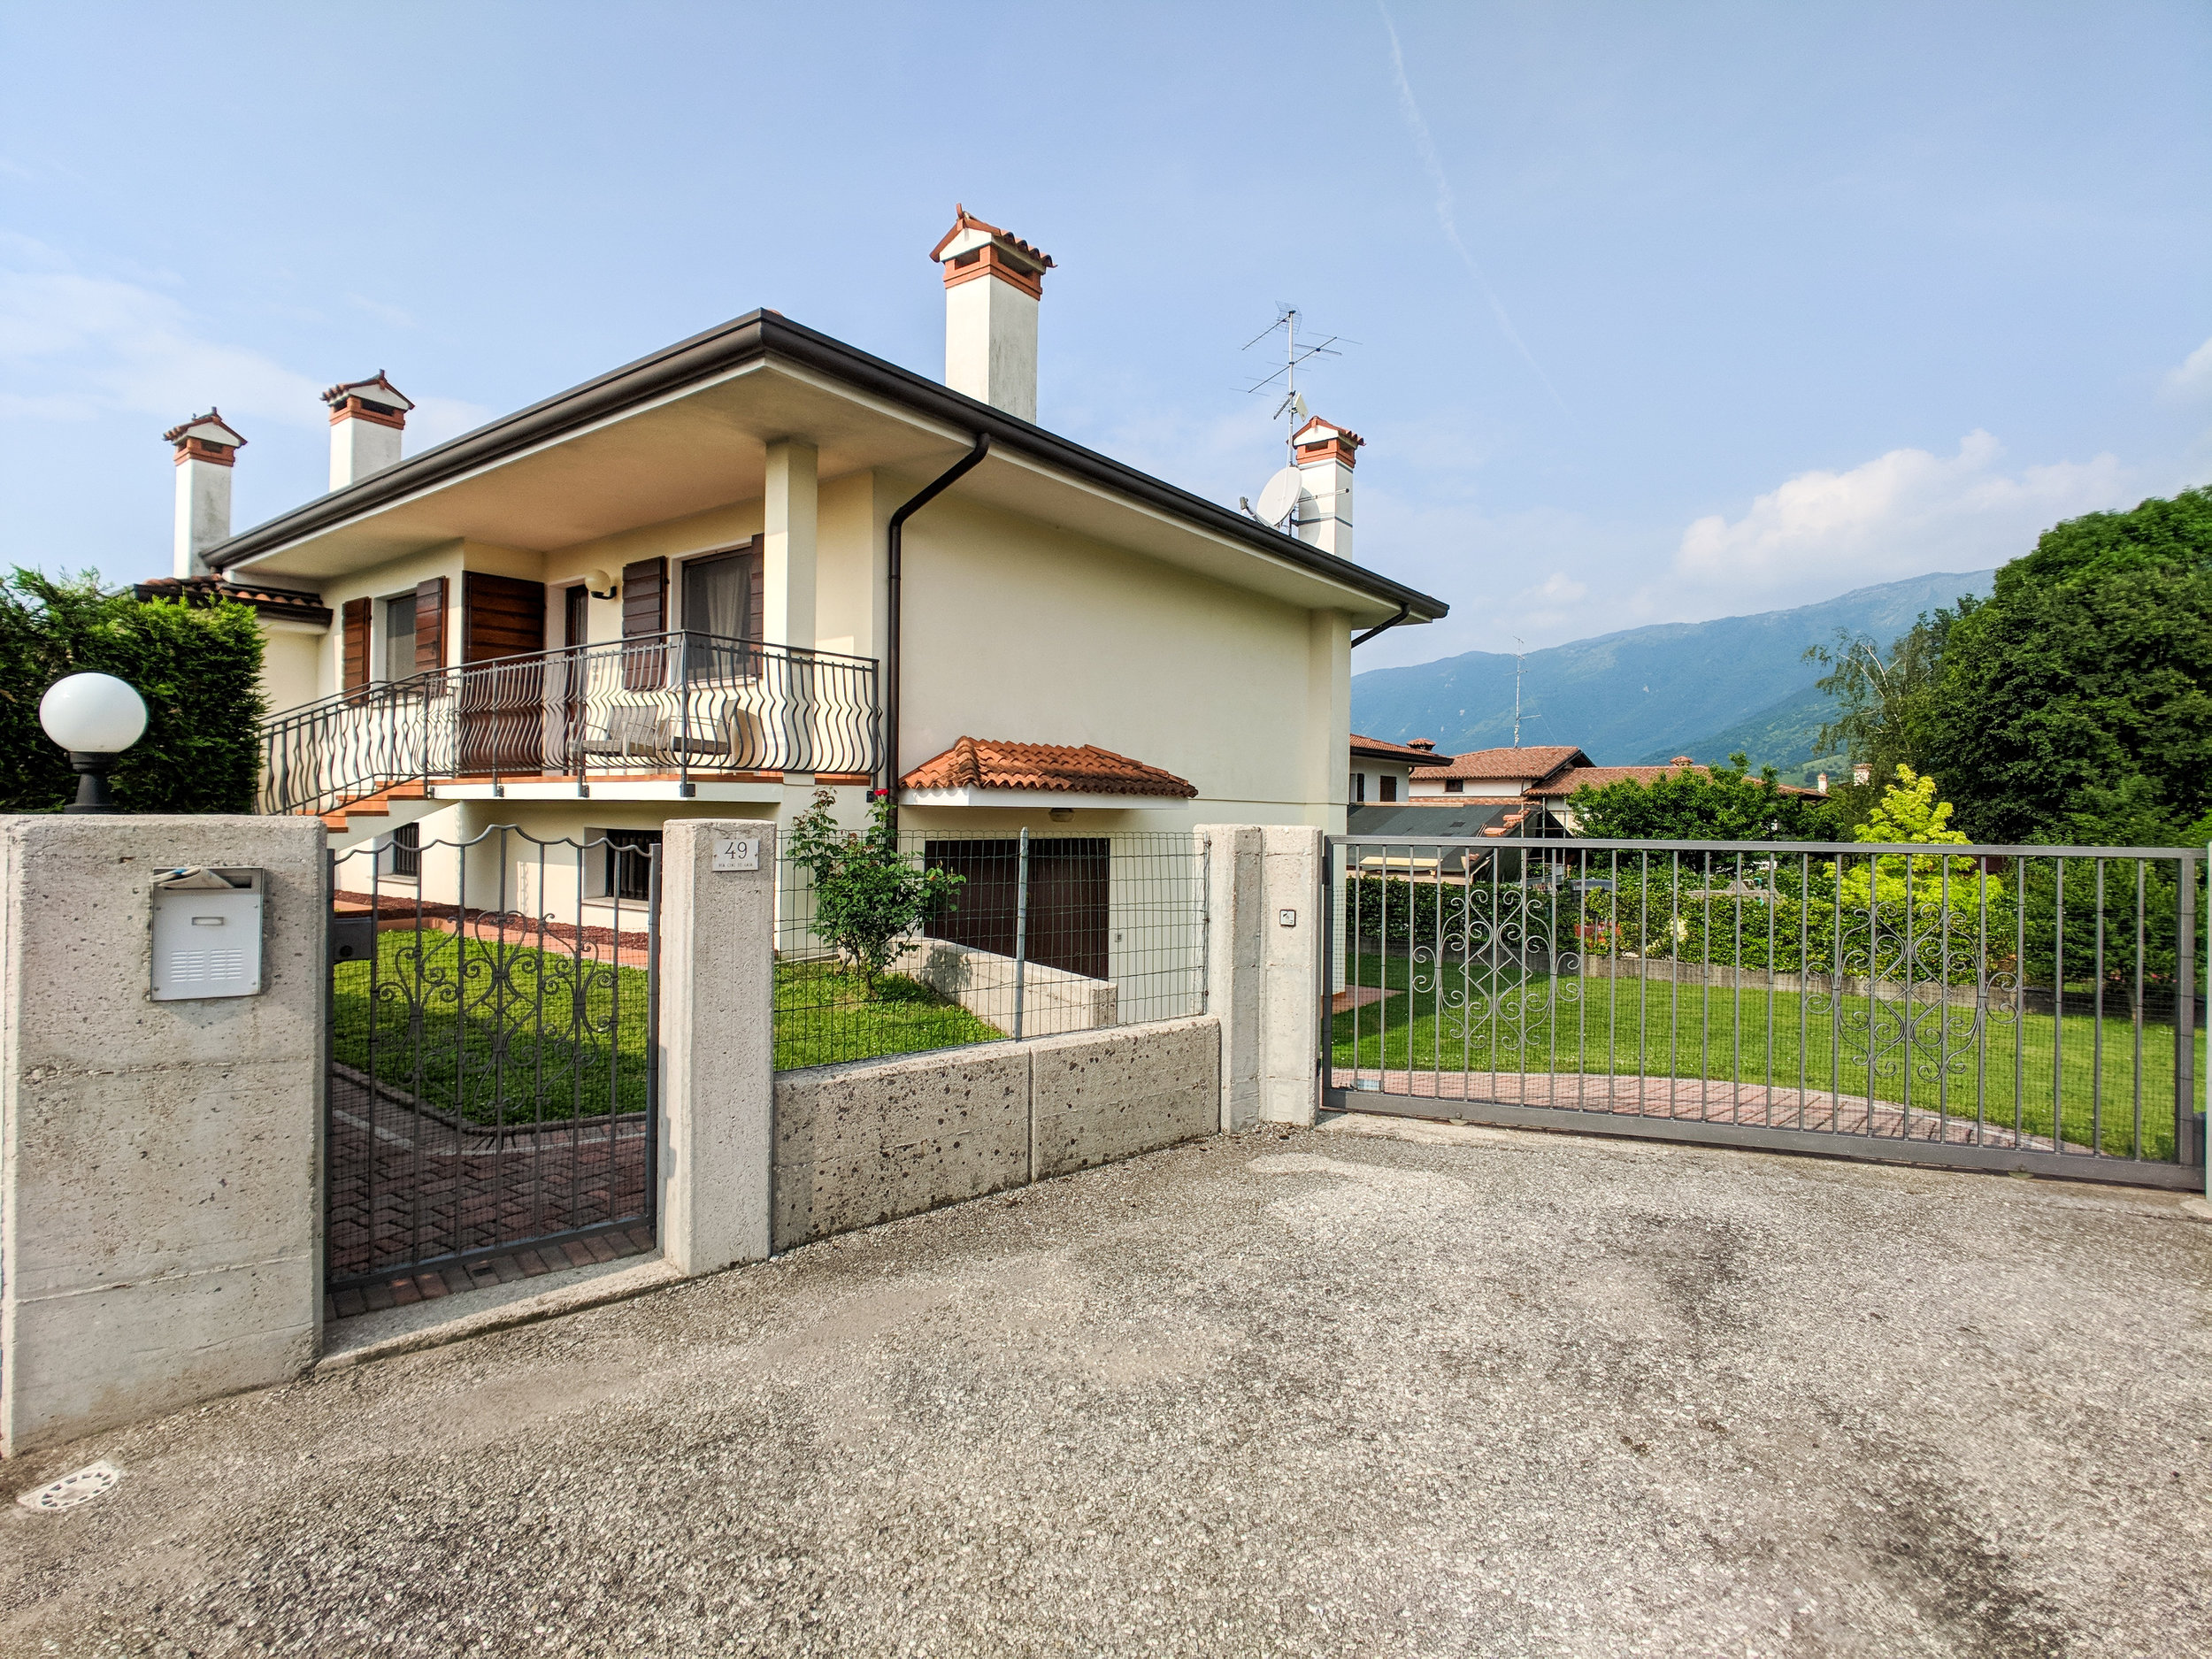 Our Italian Home 🏡